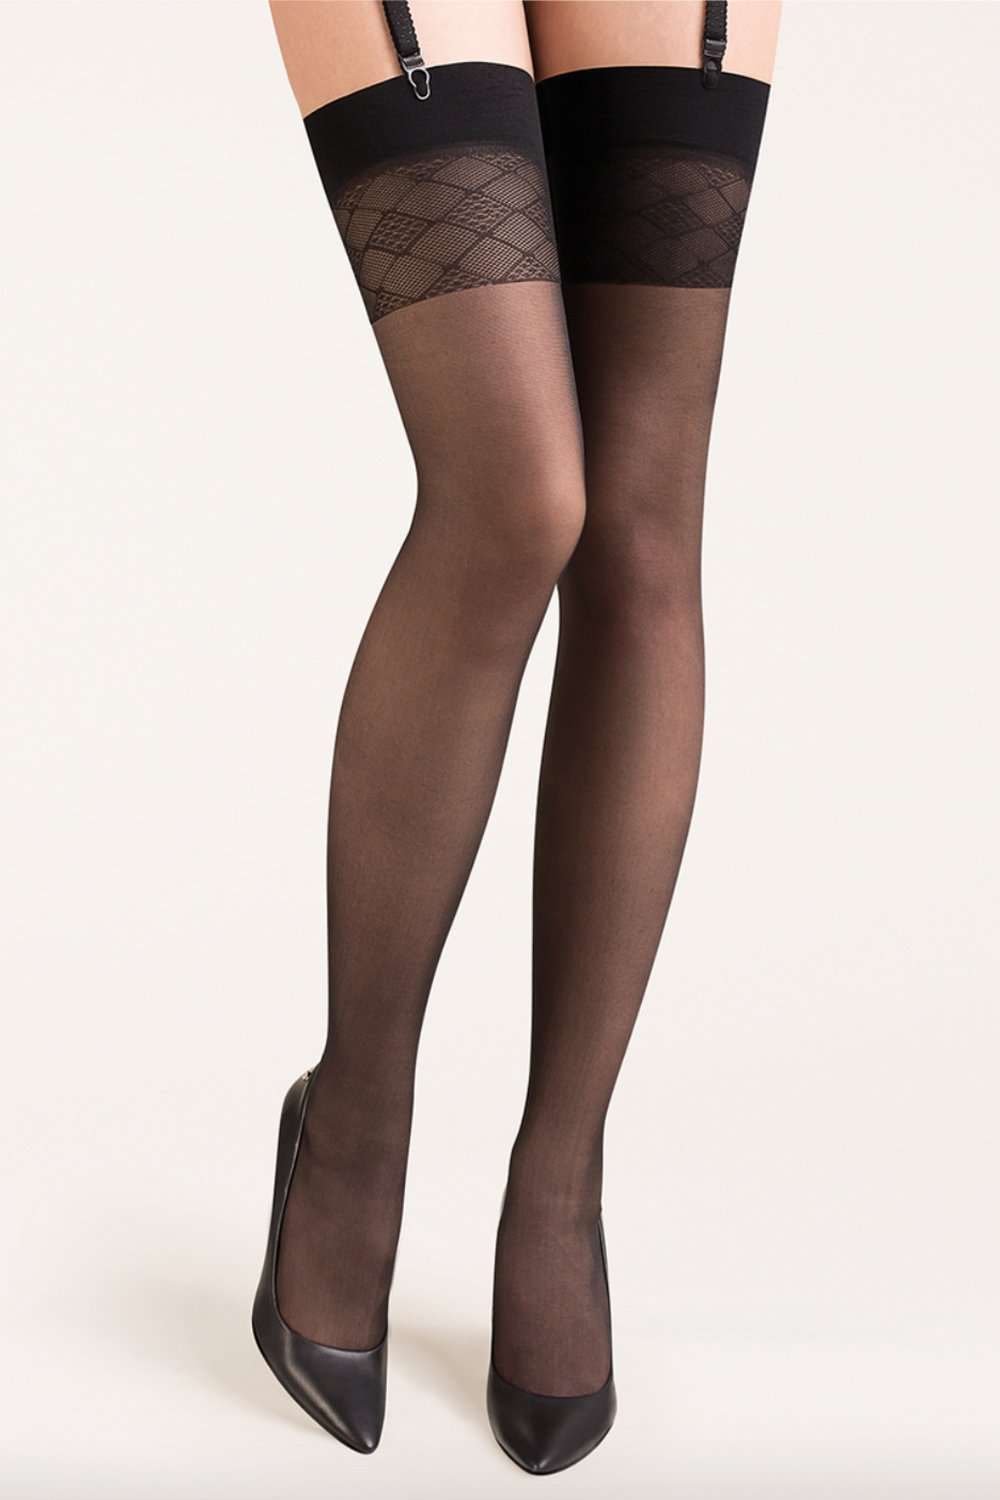 Gabriella Classic Anika Stockings 20 Denier